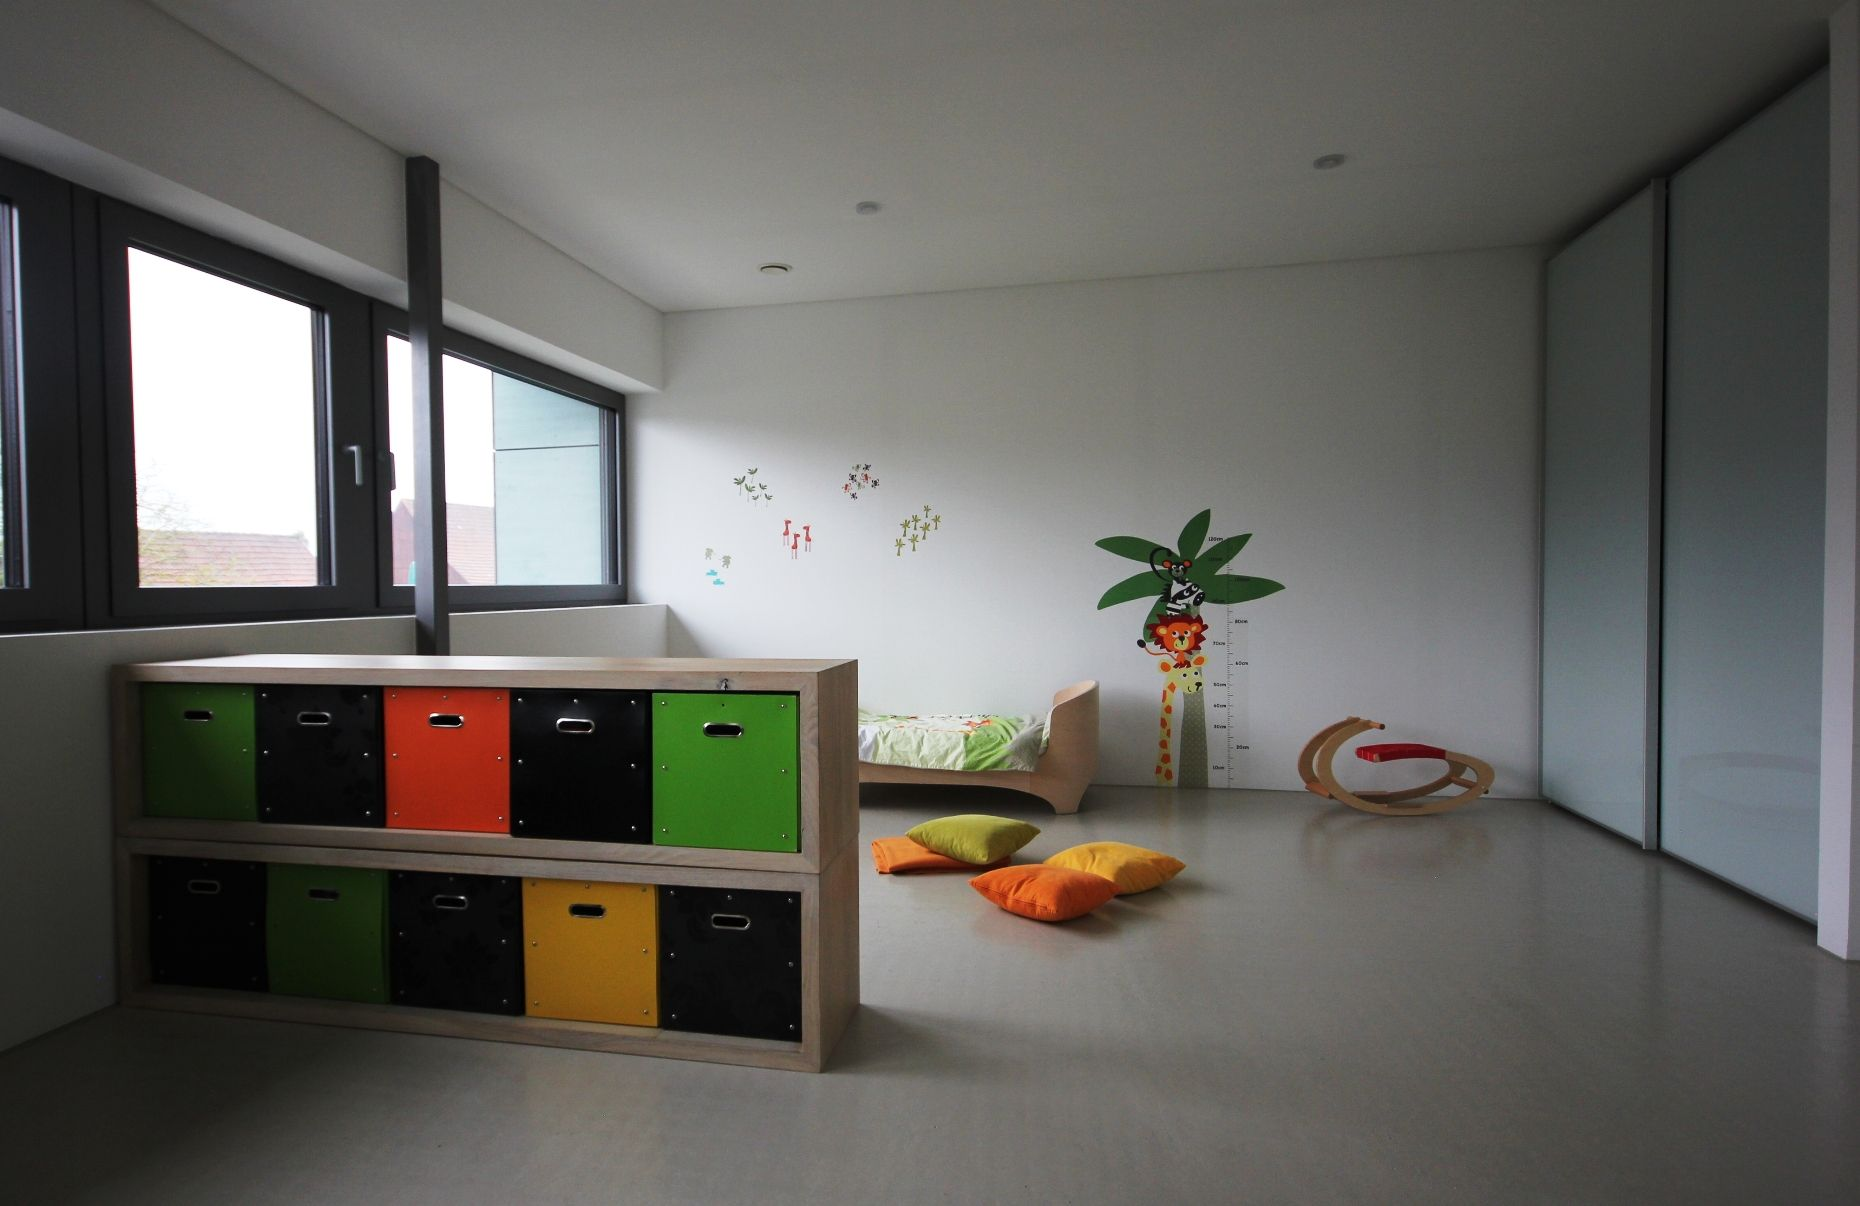 gro z giges kinderzimmer mit raumtrenner. Black Bedroom Furniture Sets. Home Design Ideas